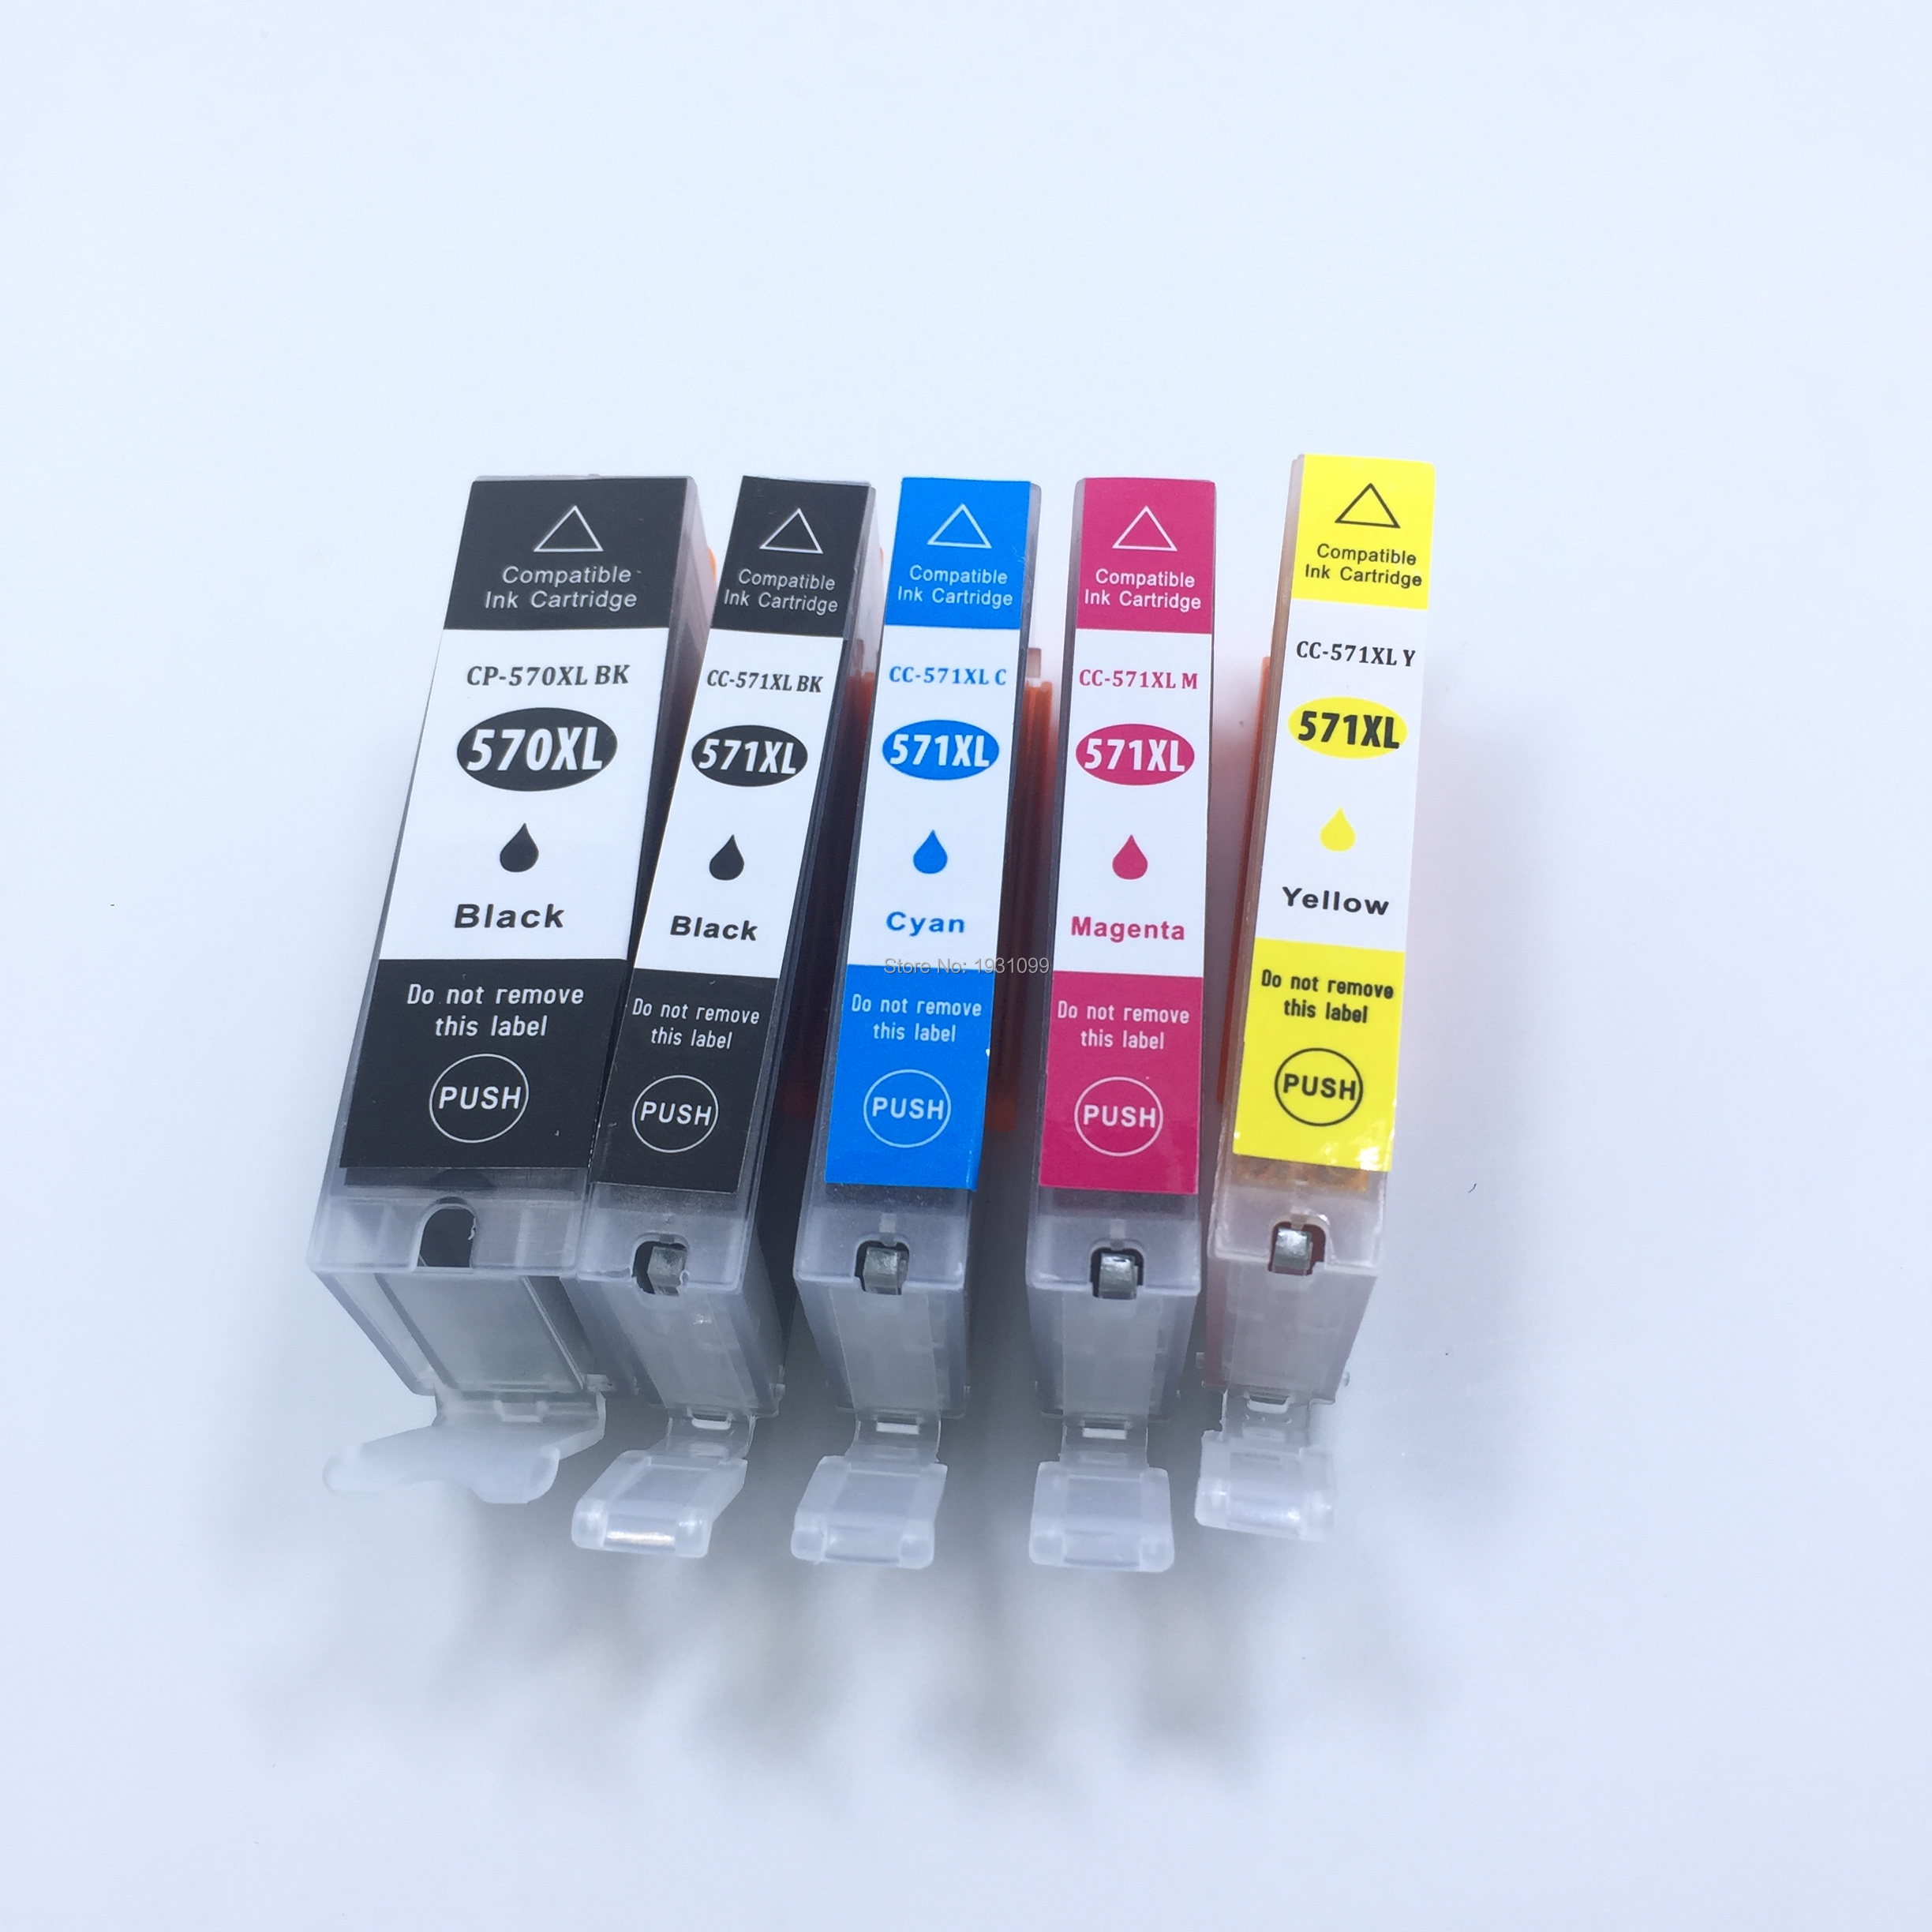 YOTAT 5pcs Compatible PGI-570XL ink cartridge PGI570 PGI-570 CLI-571 for Canon PIXMA MG5750 MG5751 MG5752 MG5753 MG6850 <font><b>TS5050</b></font> image